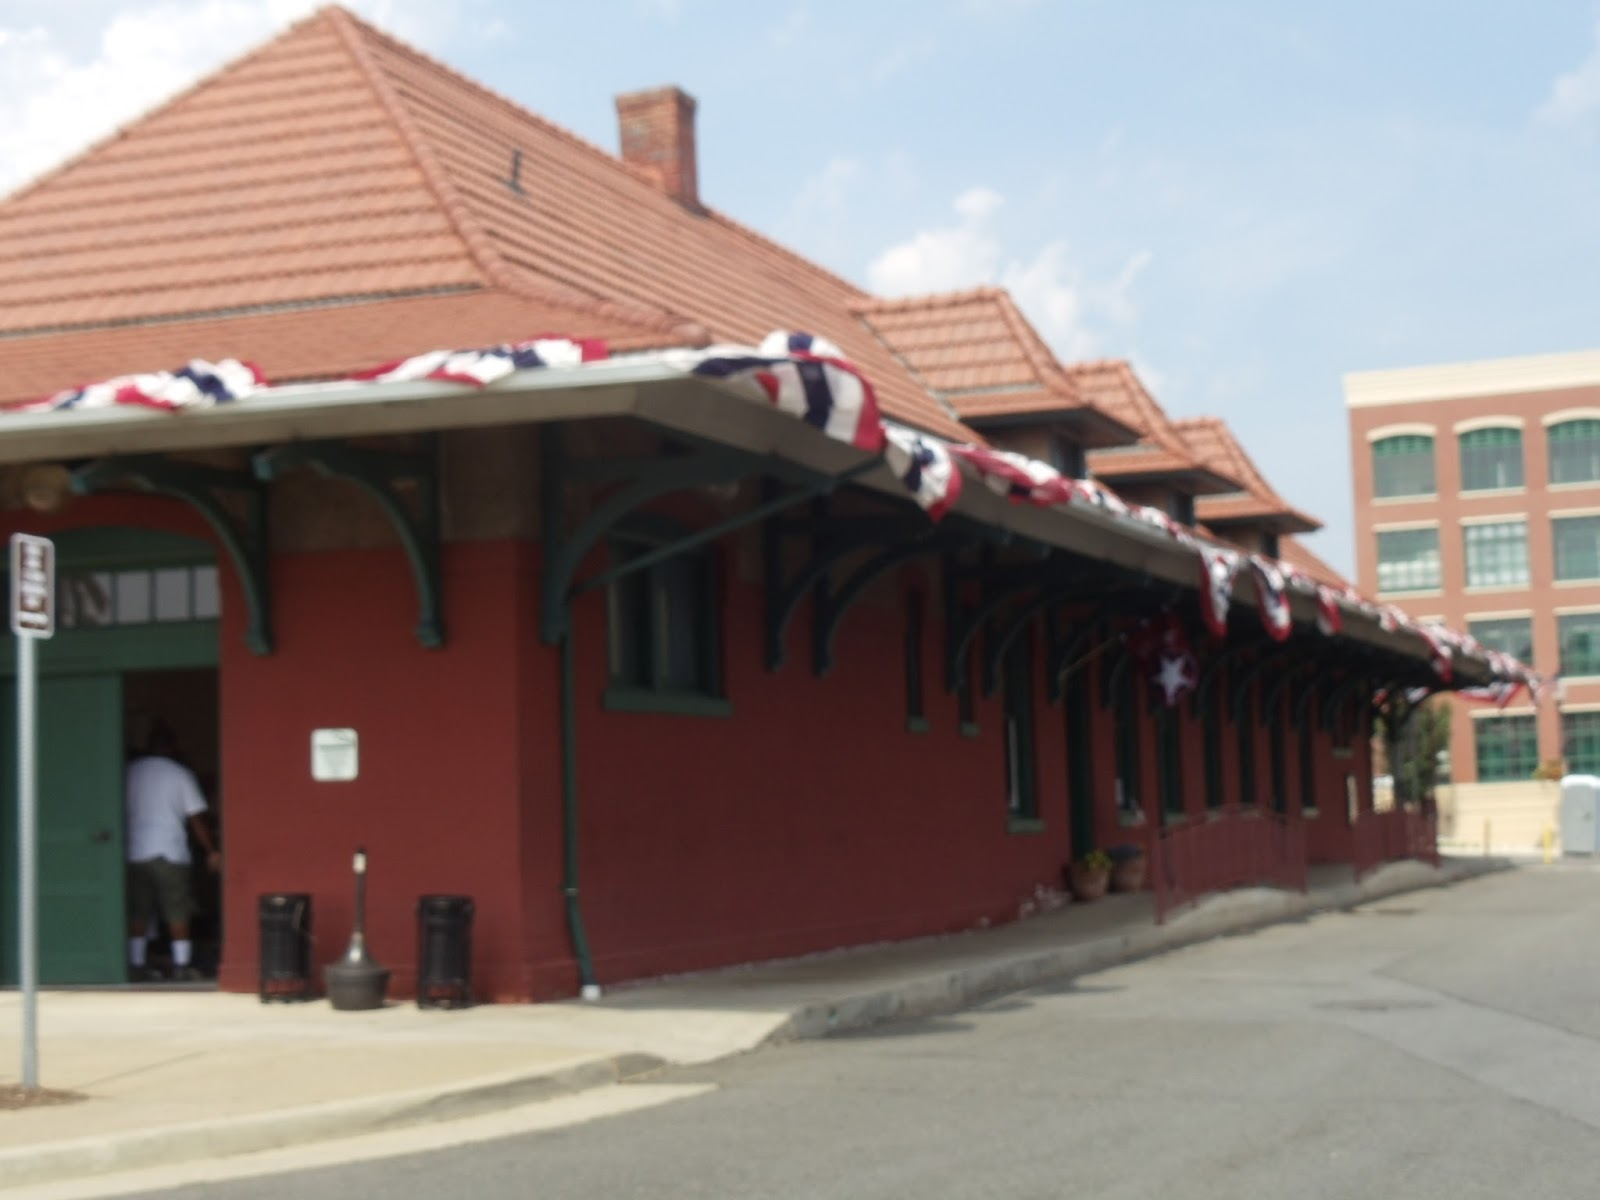 Train Depot in Historic Downtown Manassas